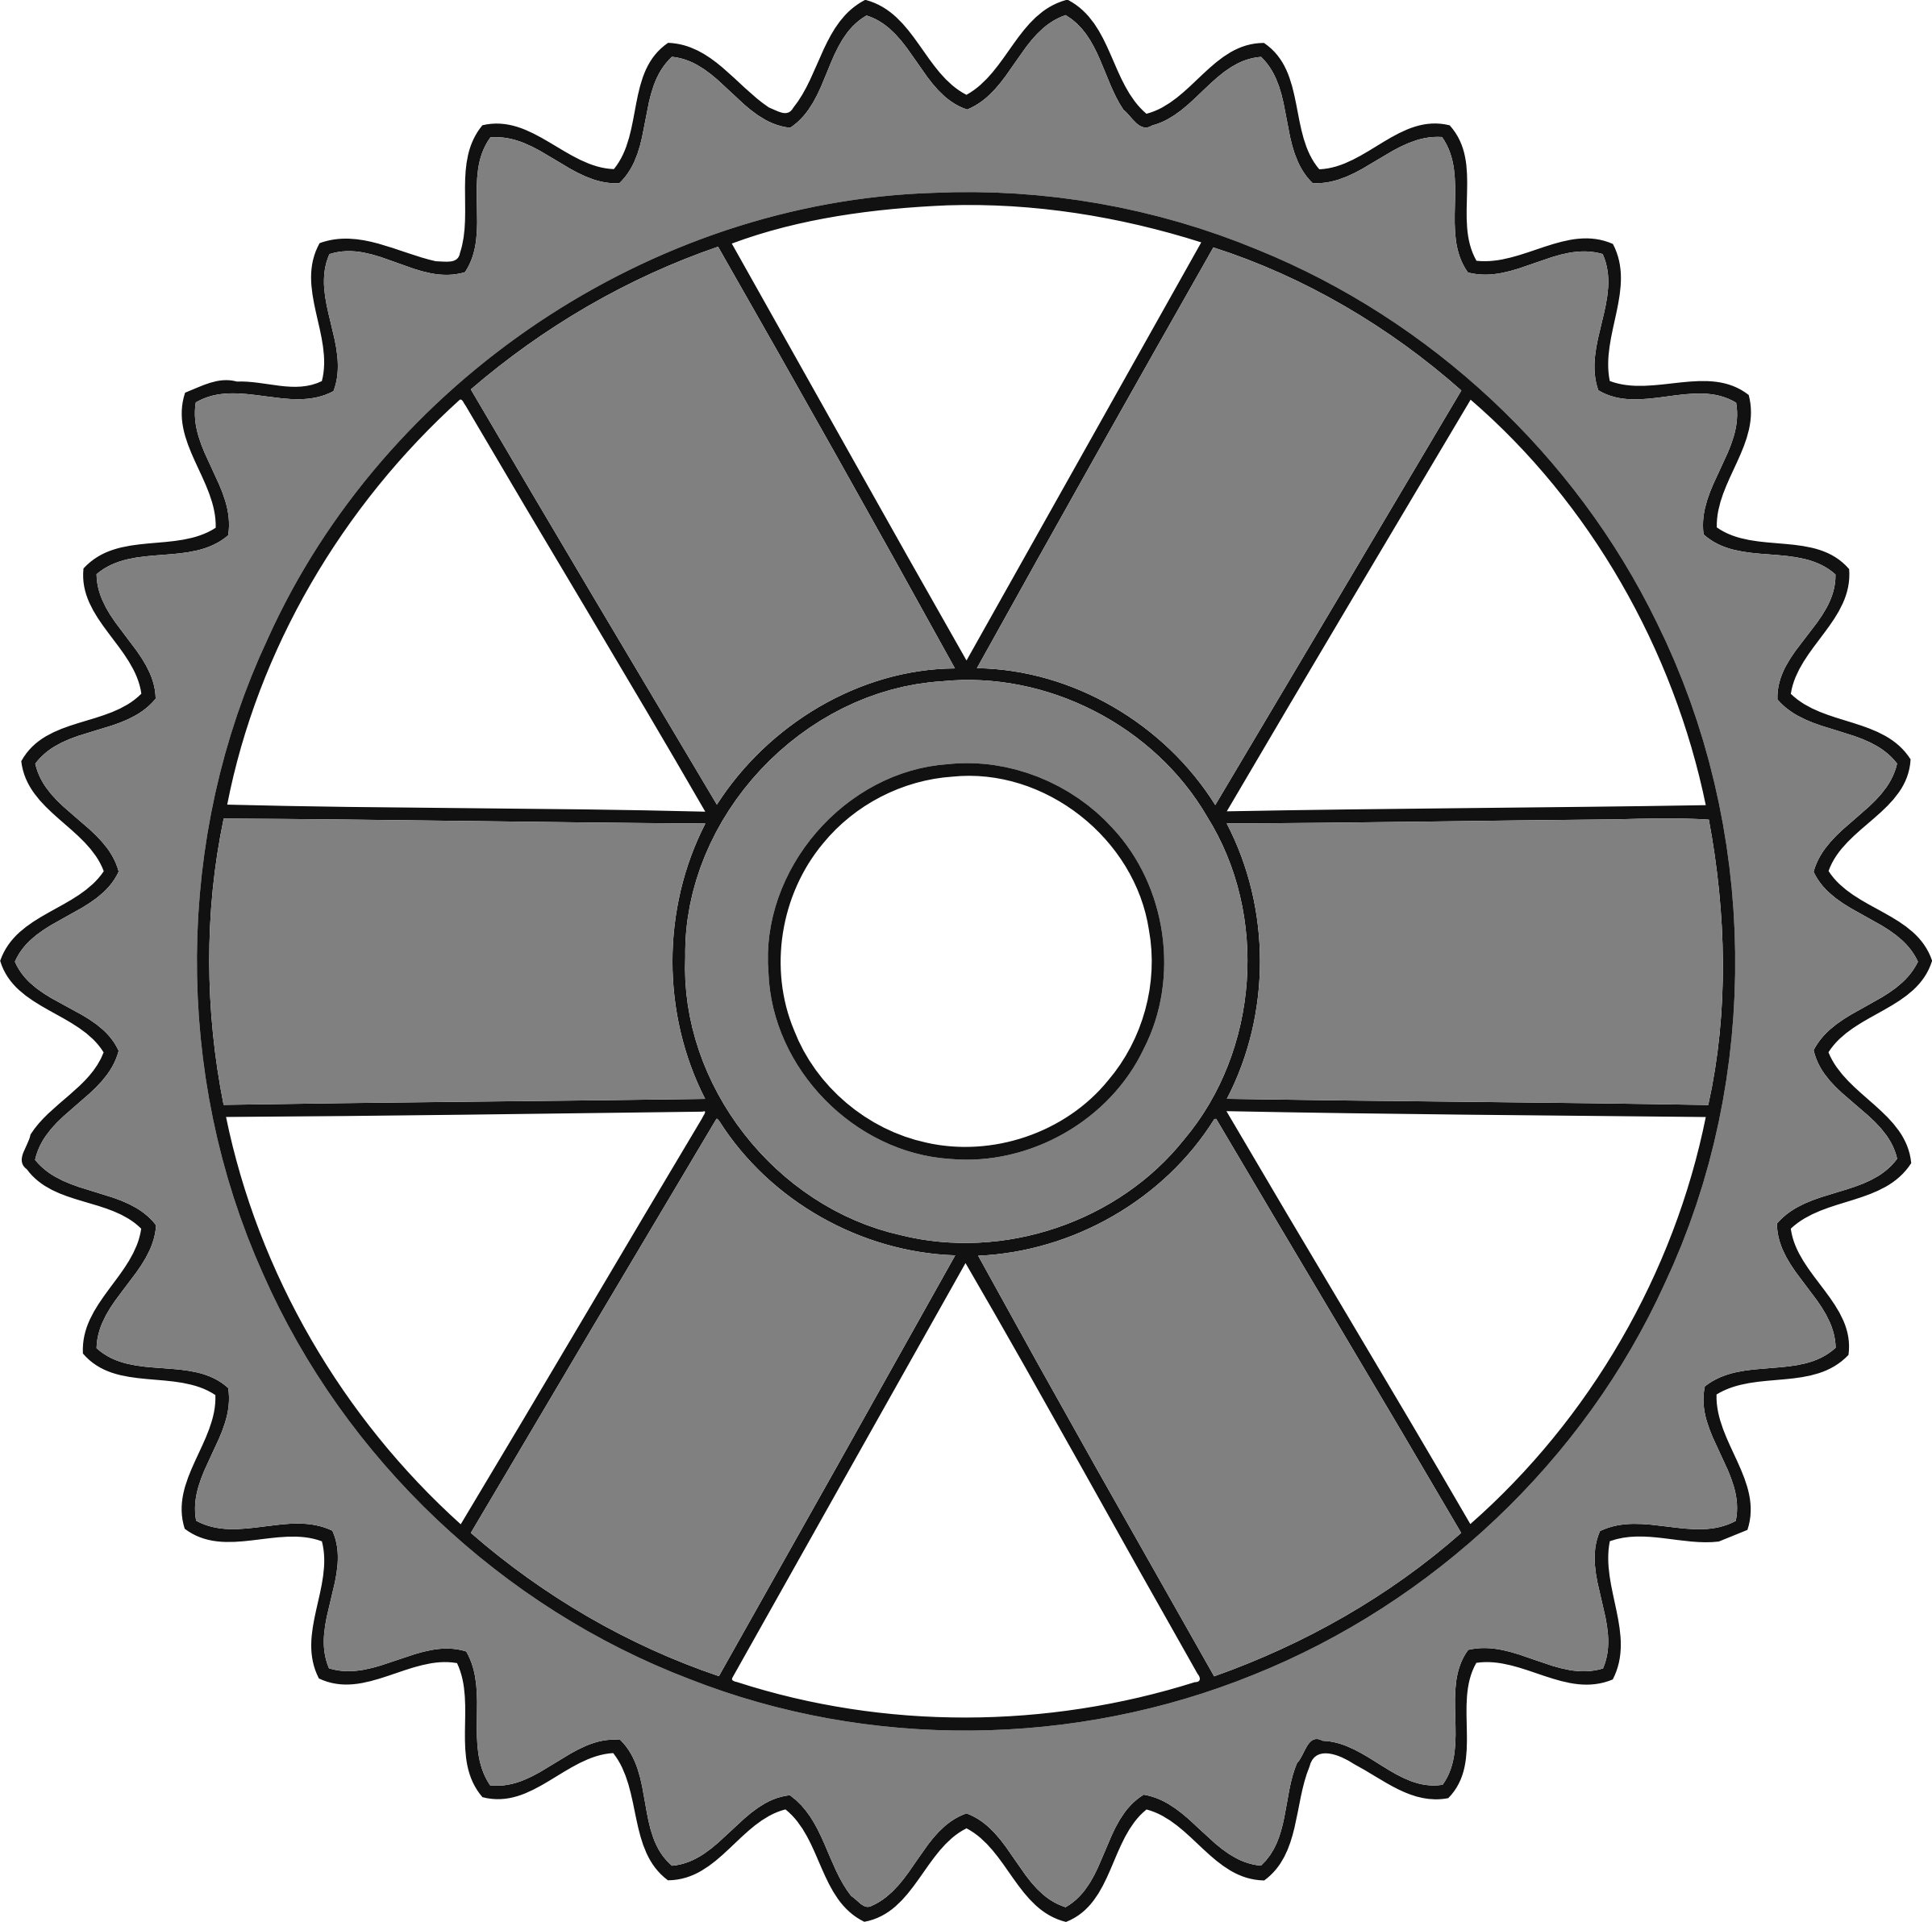 30-tooth gear with rectangular spokes by Firkin